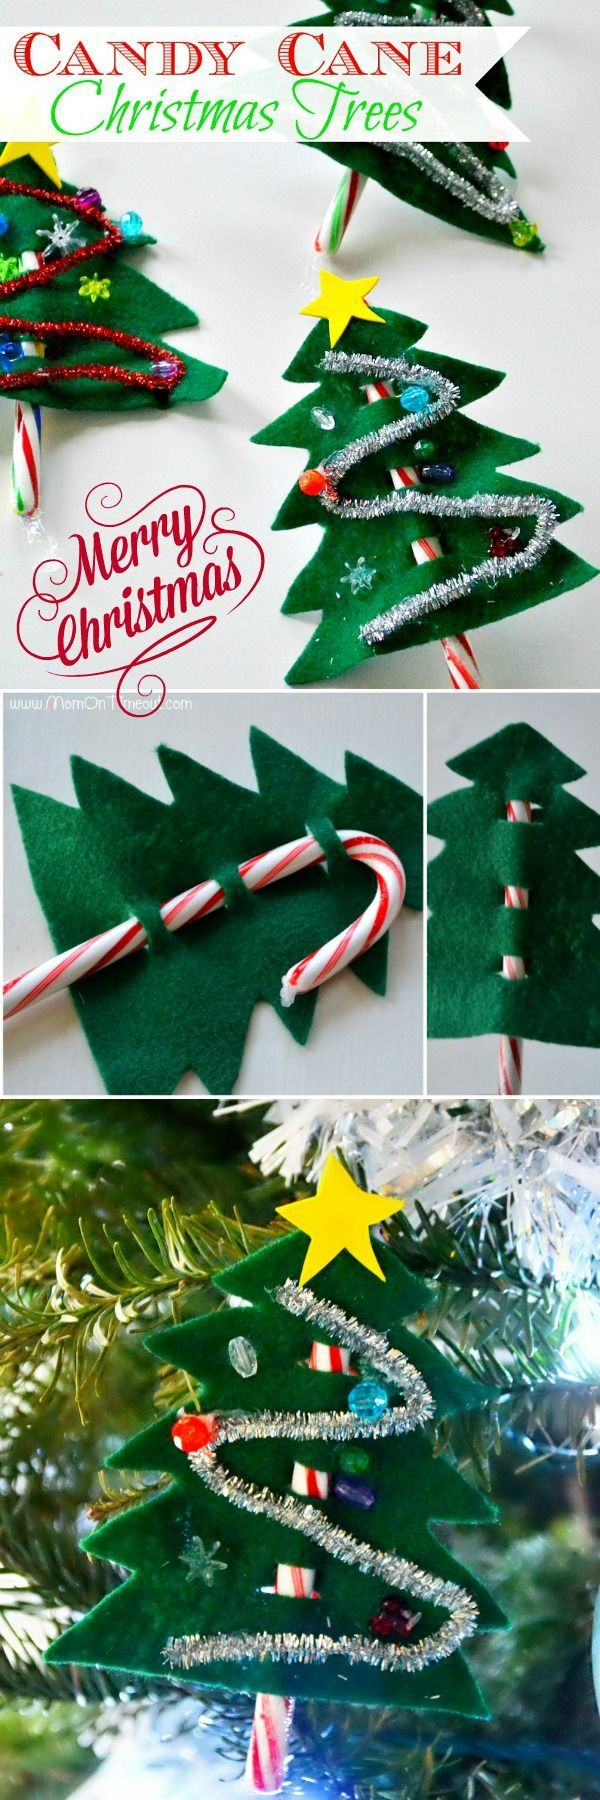 Best 25+ Traditional christmas tree ideas on Pinterest | Christmas ...